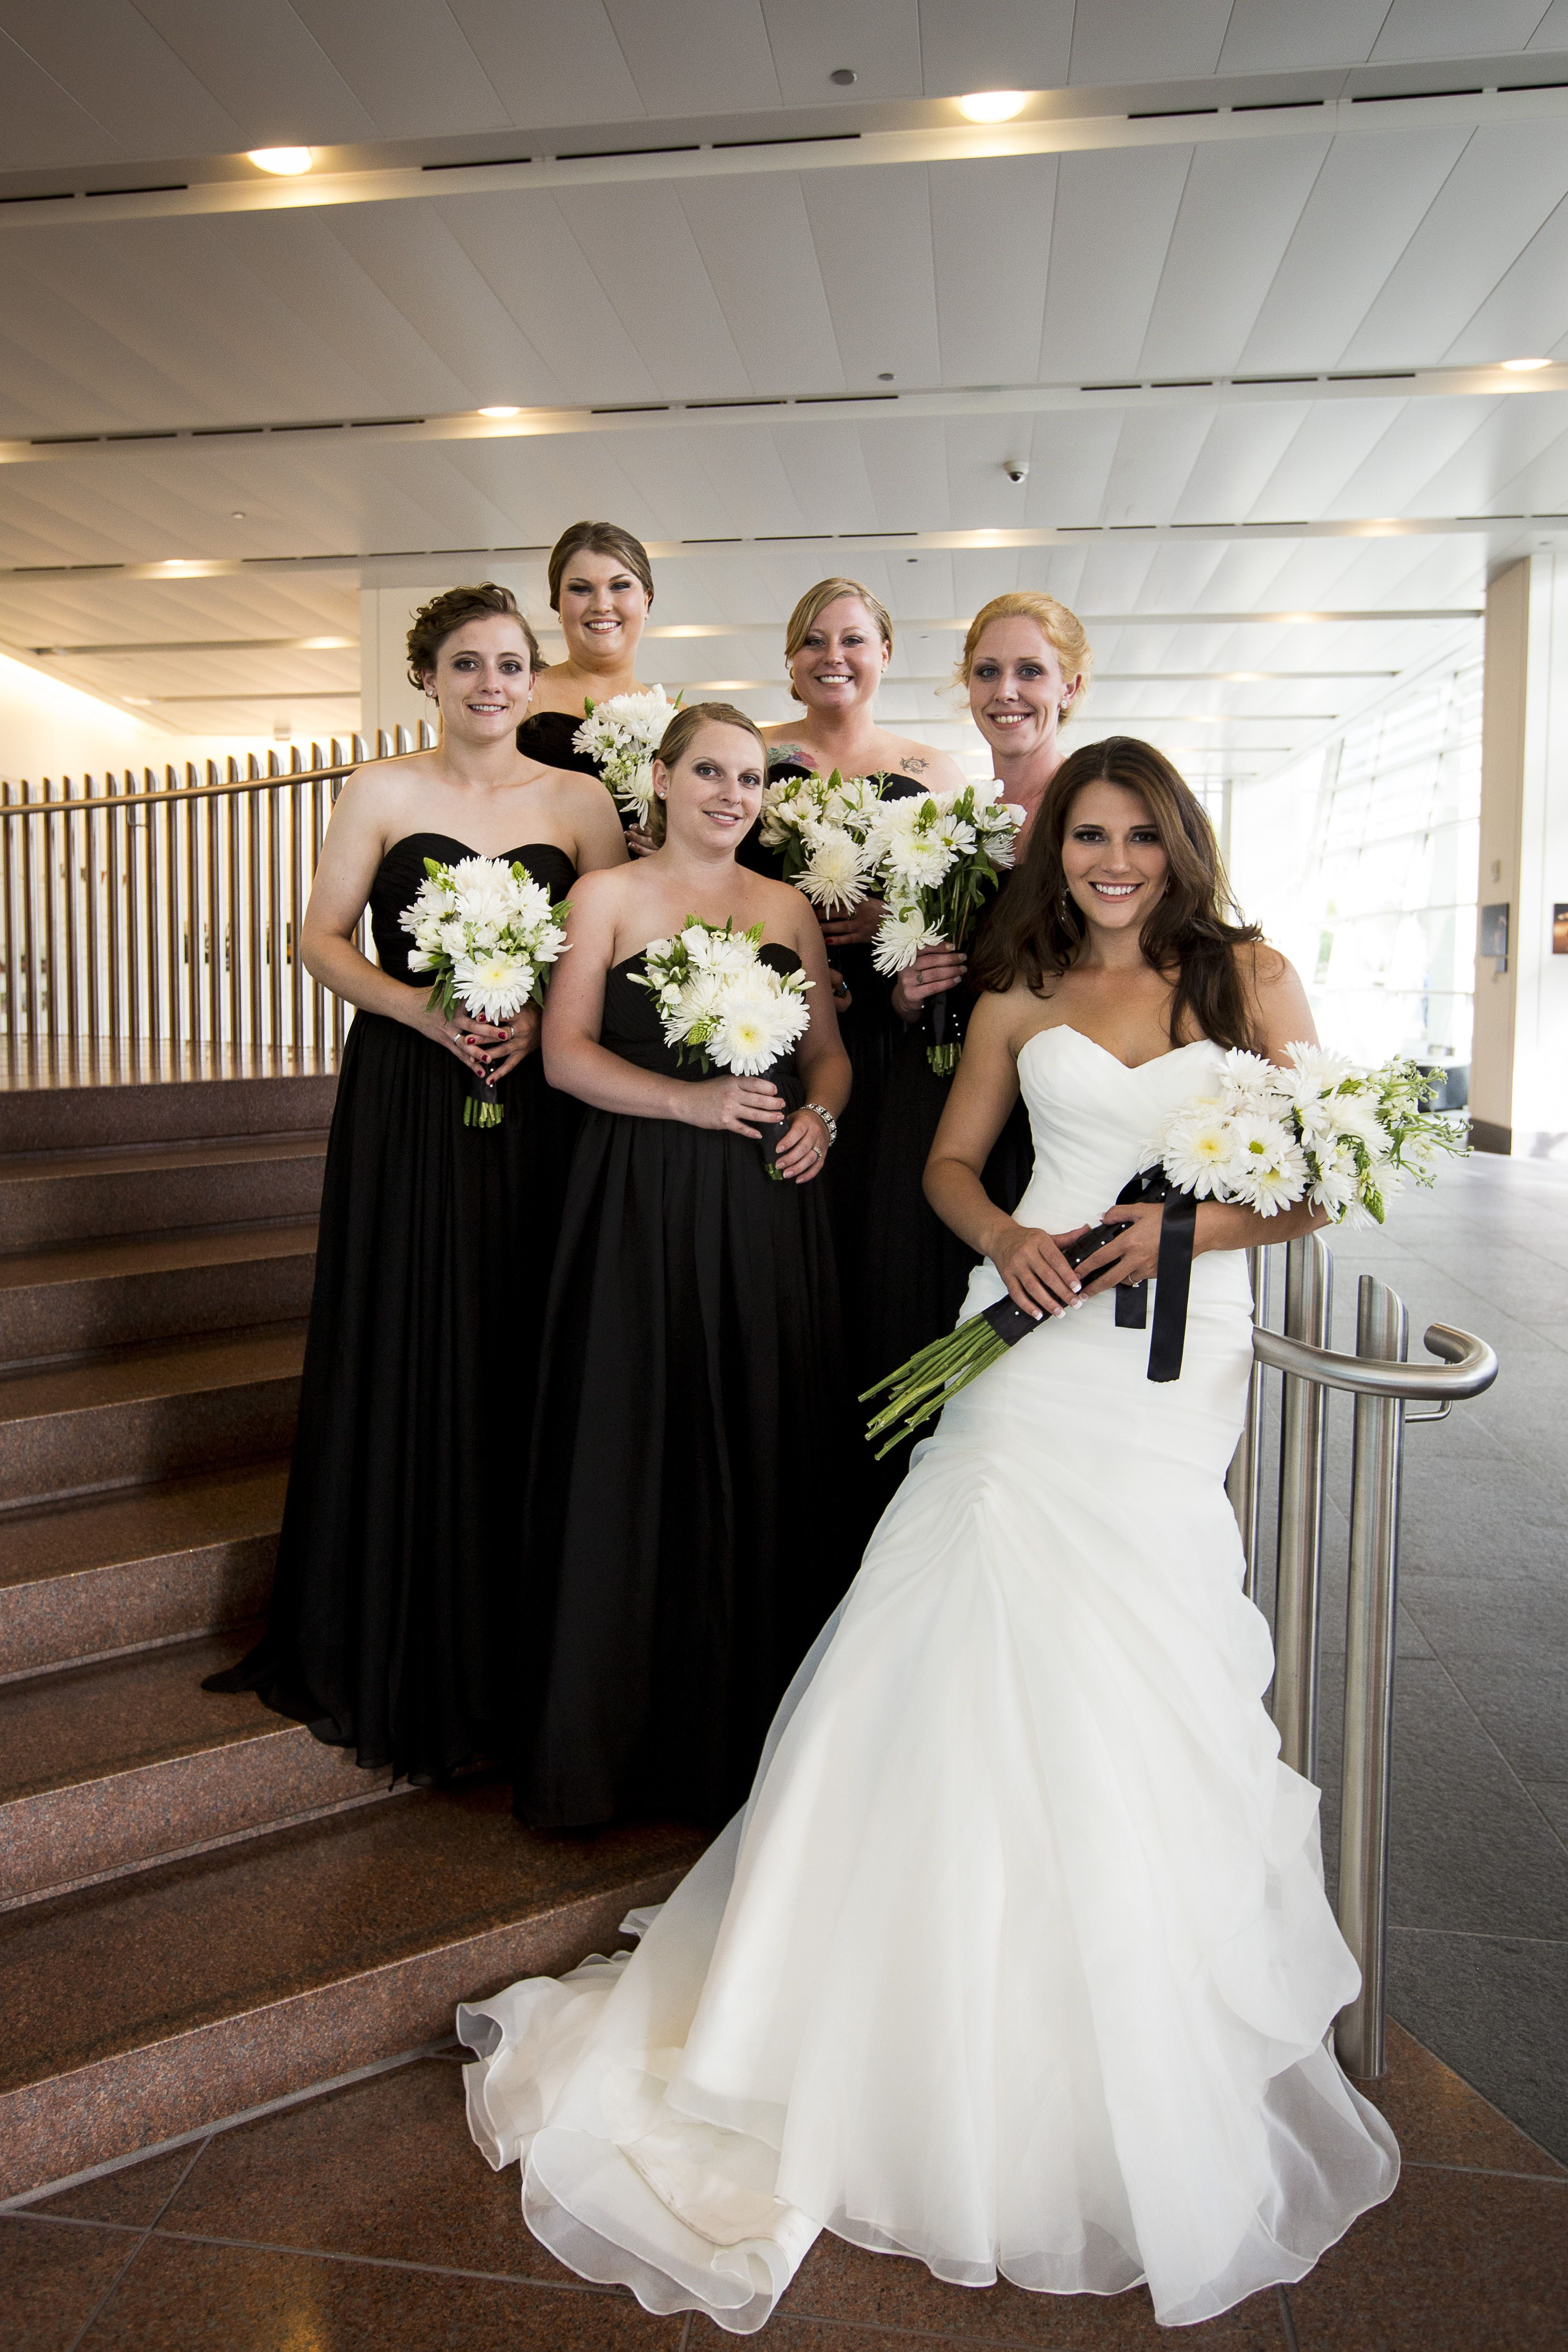 Downtown denver colorado 4th of july wedding bride and downtown denver colorado 4th of july wedding bride and bridesmaids black bridesmaids dresses diy flowers ombrellifo Images